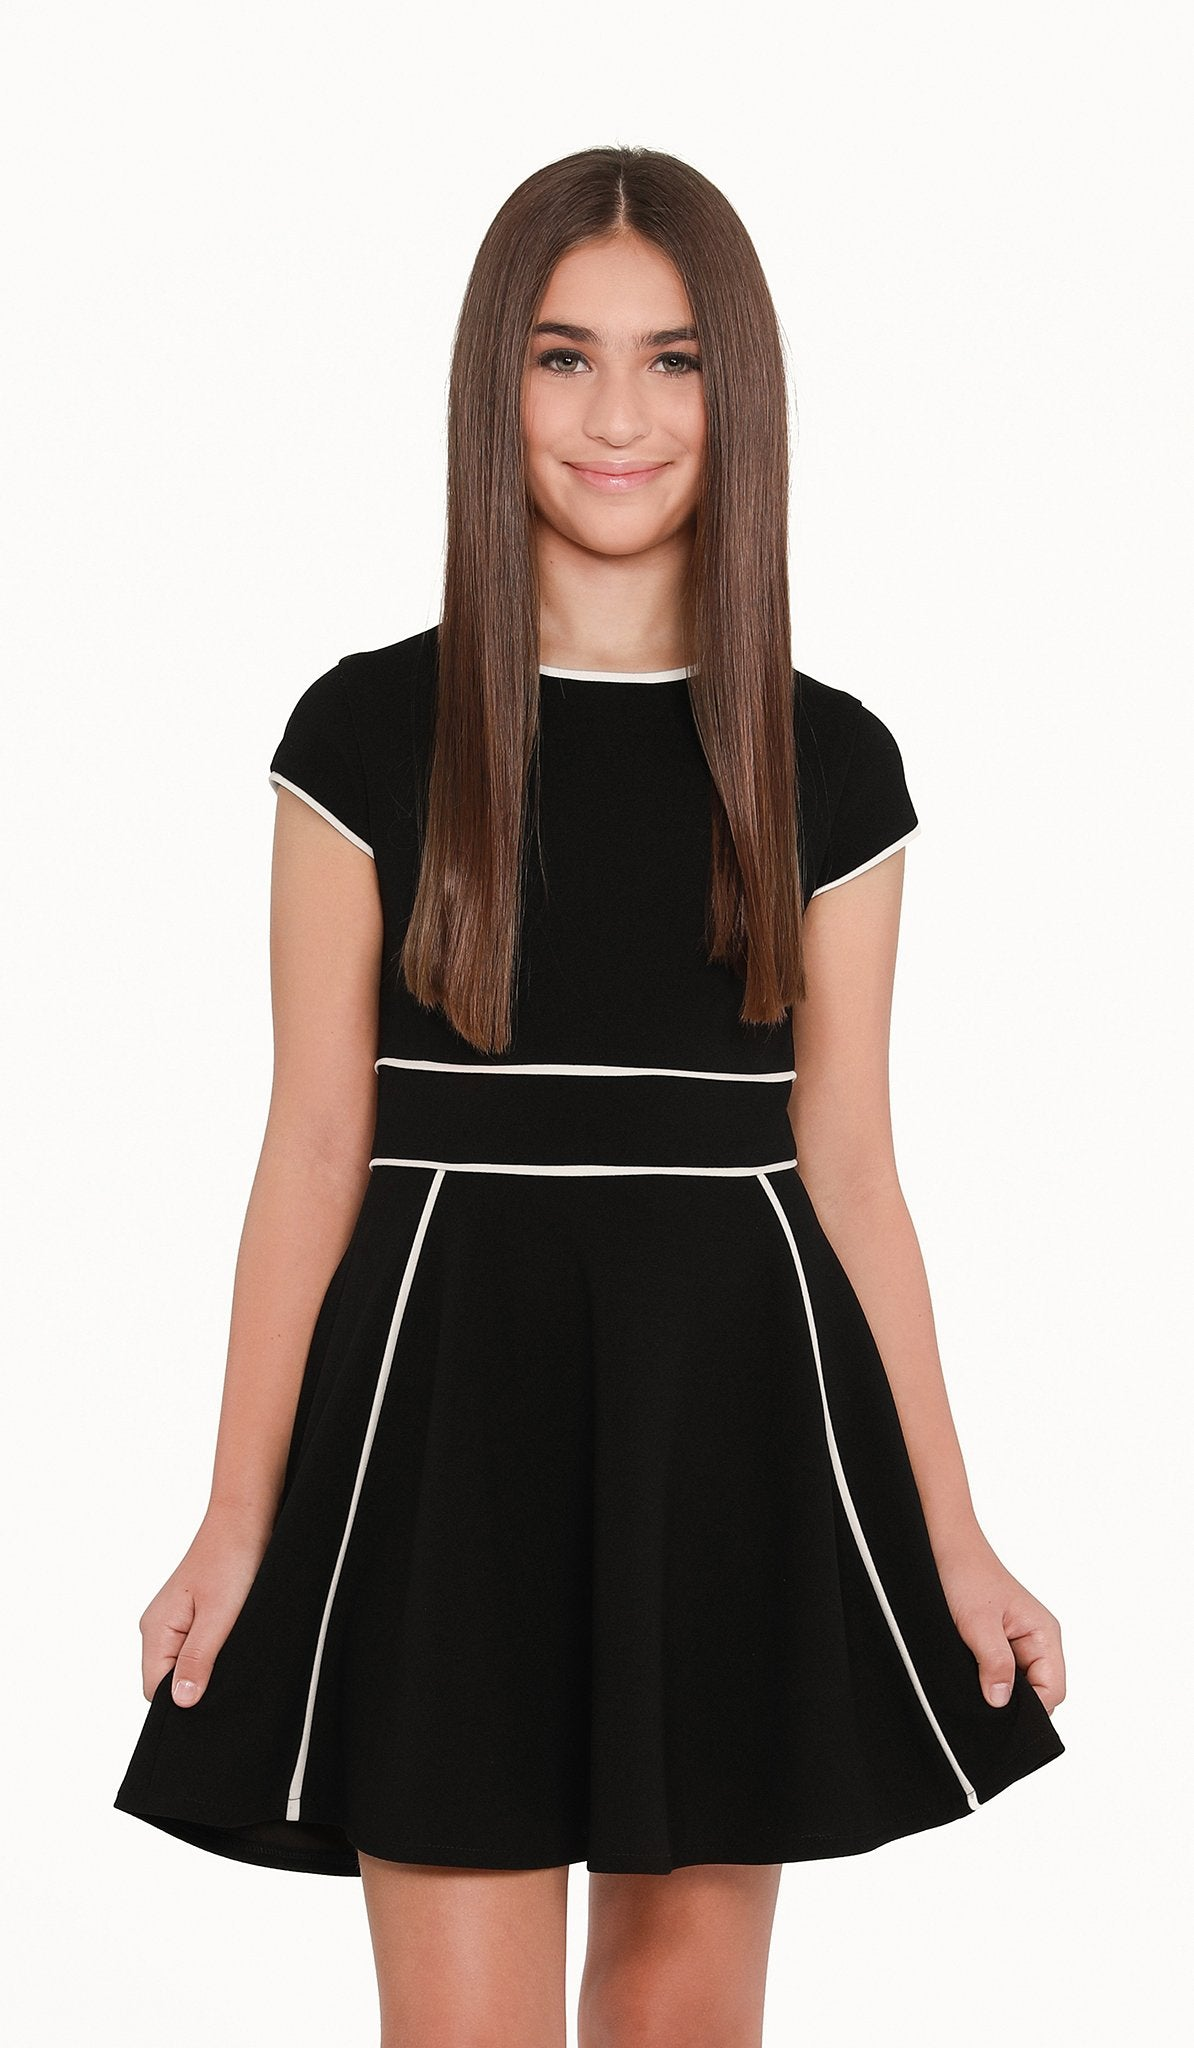 The Sally Miller Tiffany Dress - Black stretch knit cap sleeve fit and flare dress with ivory piping detail